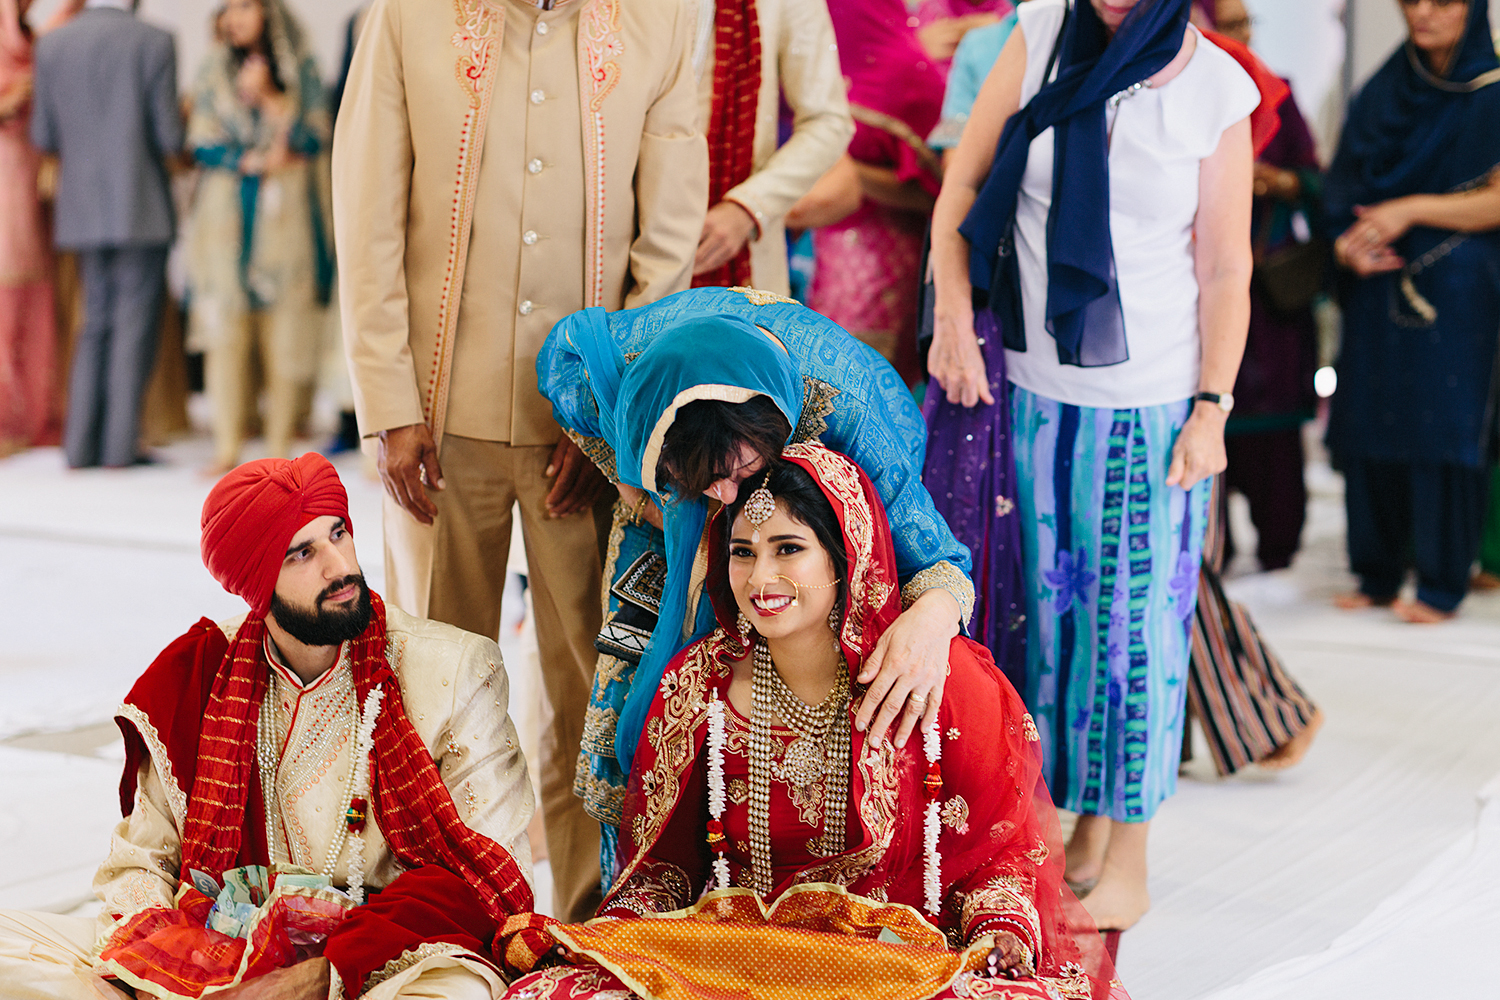 Toronto's-Best-Film-Wedding-Photographers-Multicultural-wedding-specialty-ontario-port-perry-ceremony-at-temple-candid-documentary-film-analog-photography-sikh-ceremony-congratulations-from-parents.jpg